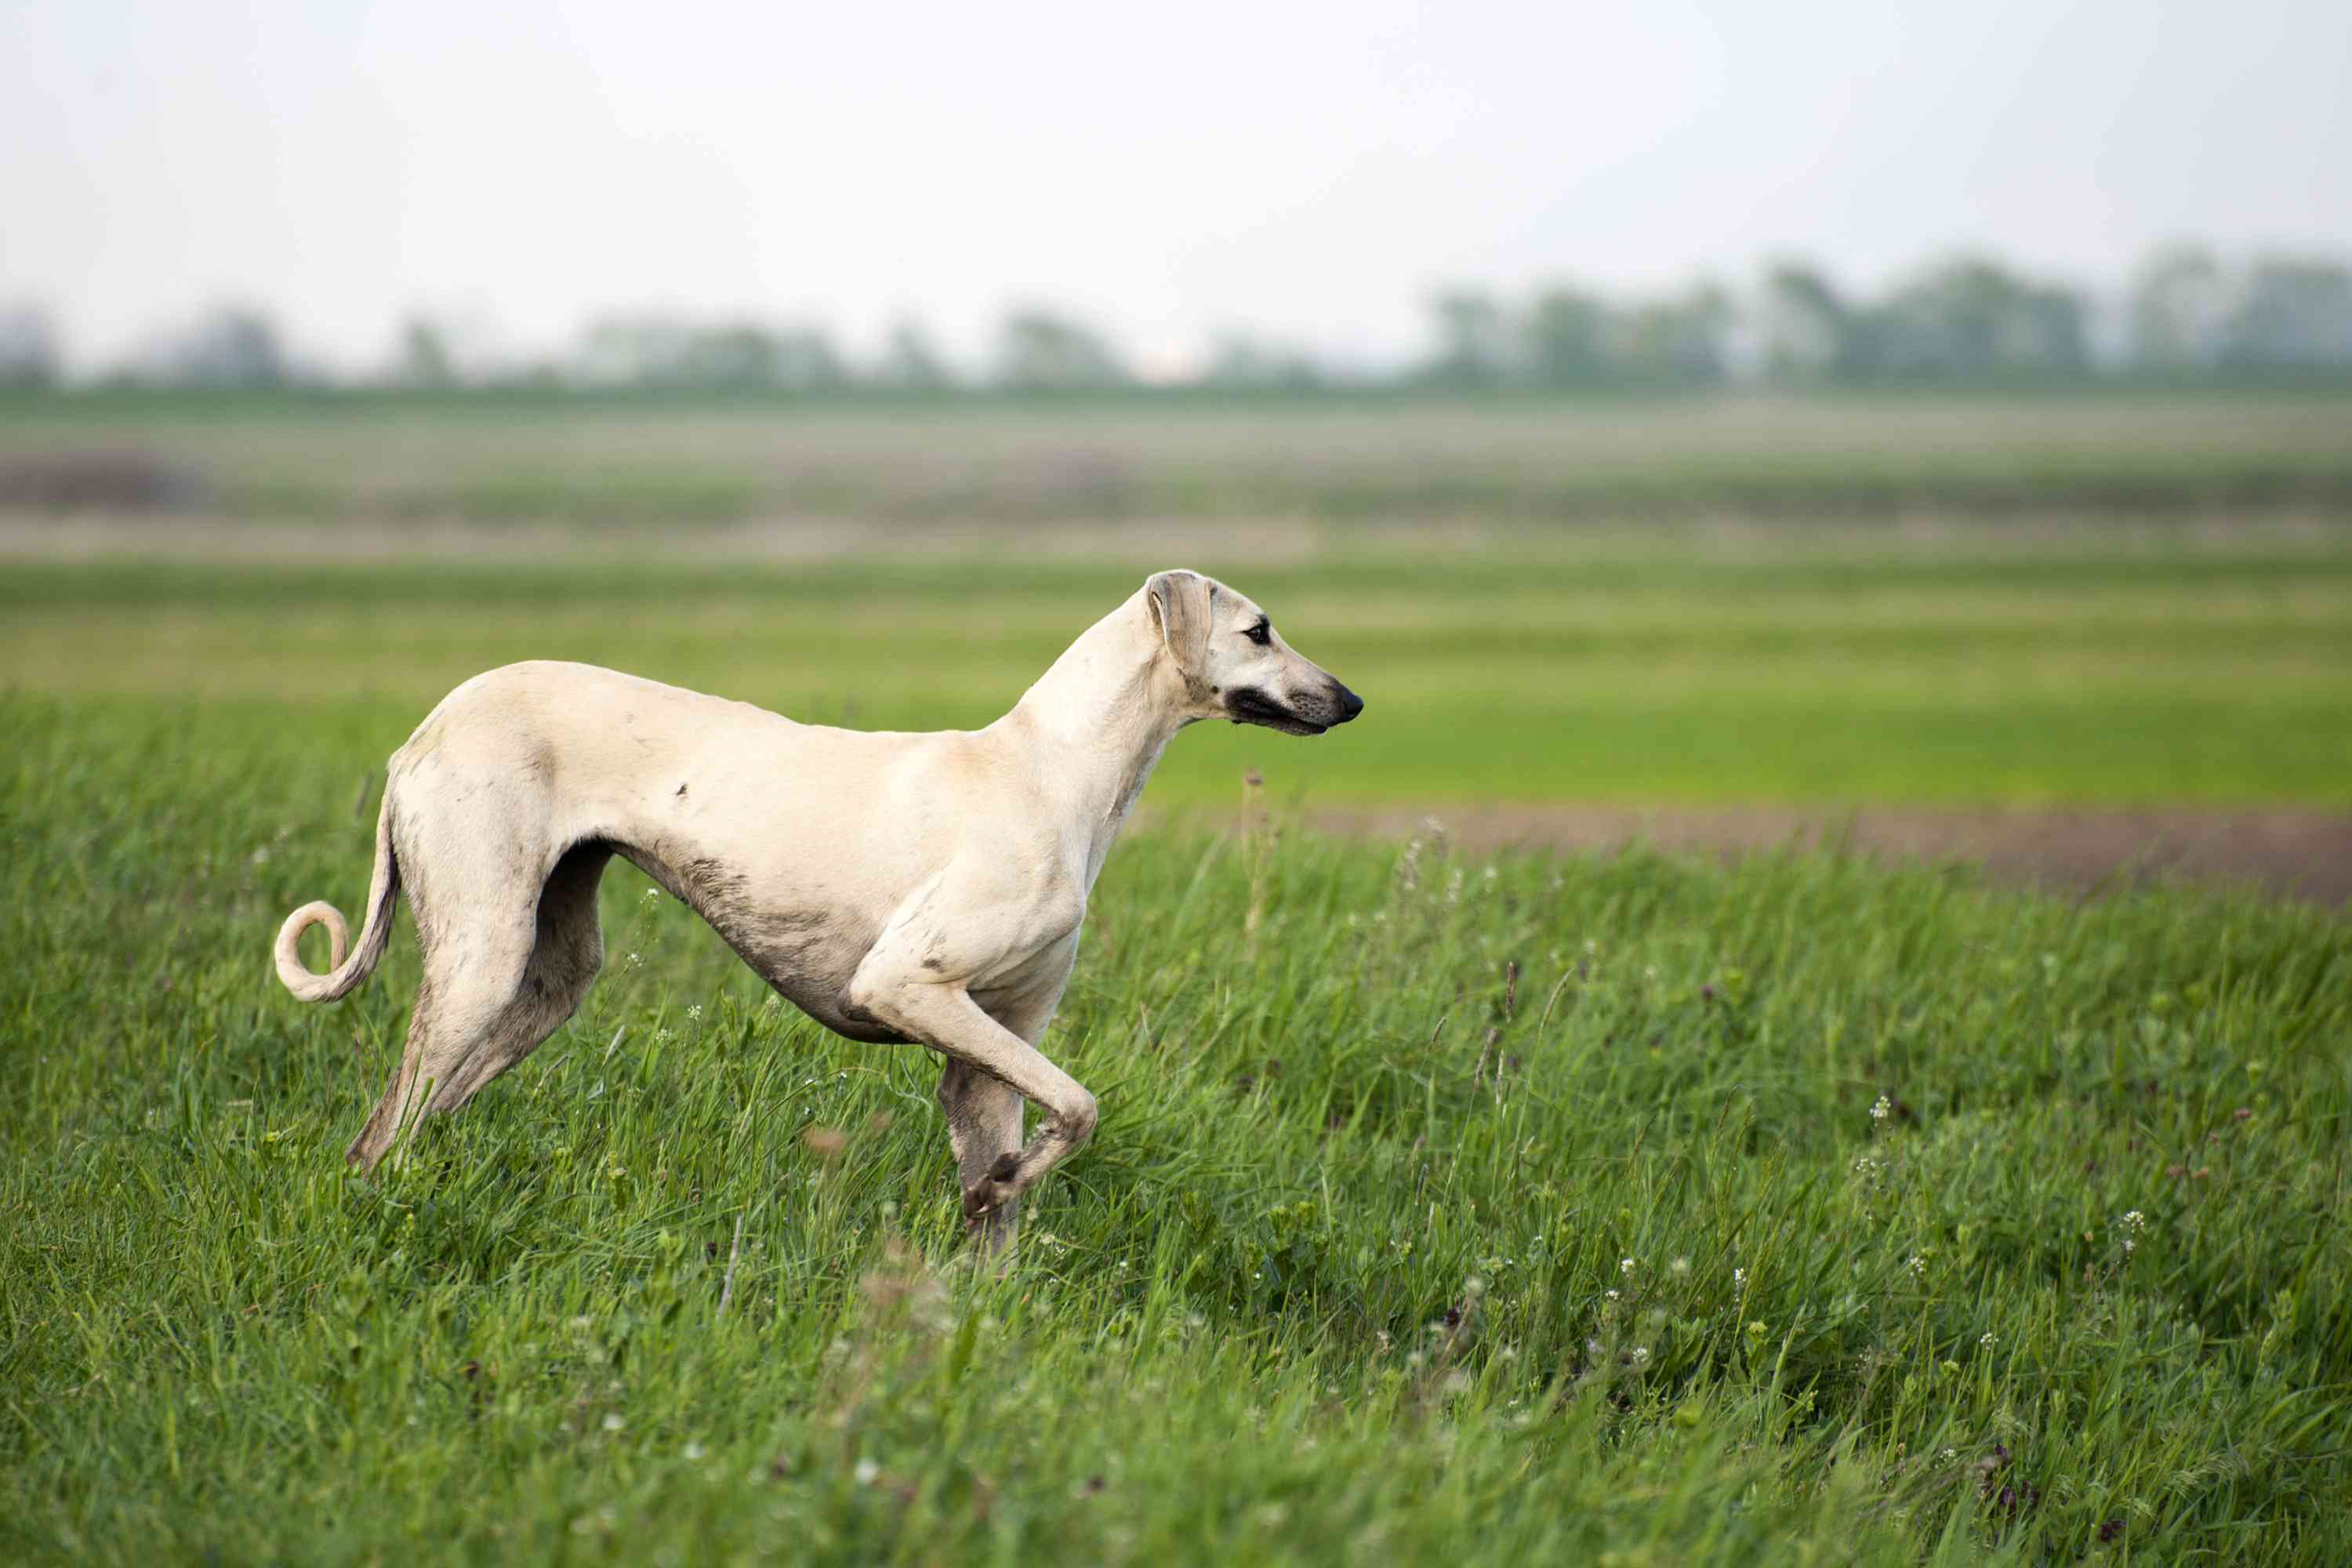 A sand-colored dog with a thin body and curled tail standing in the grass ready to run.